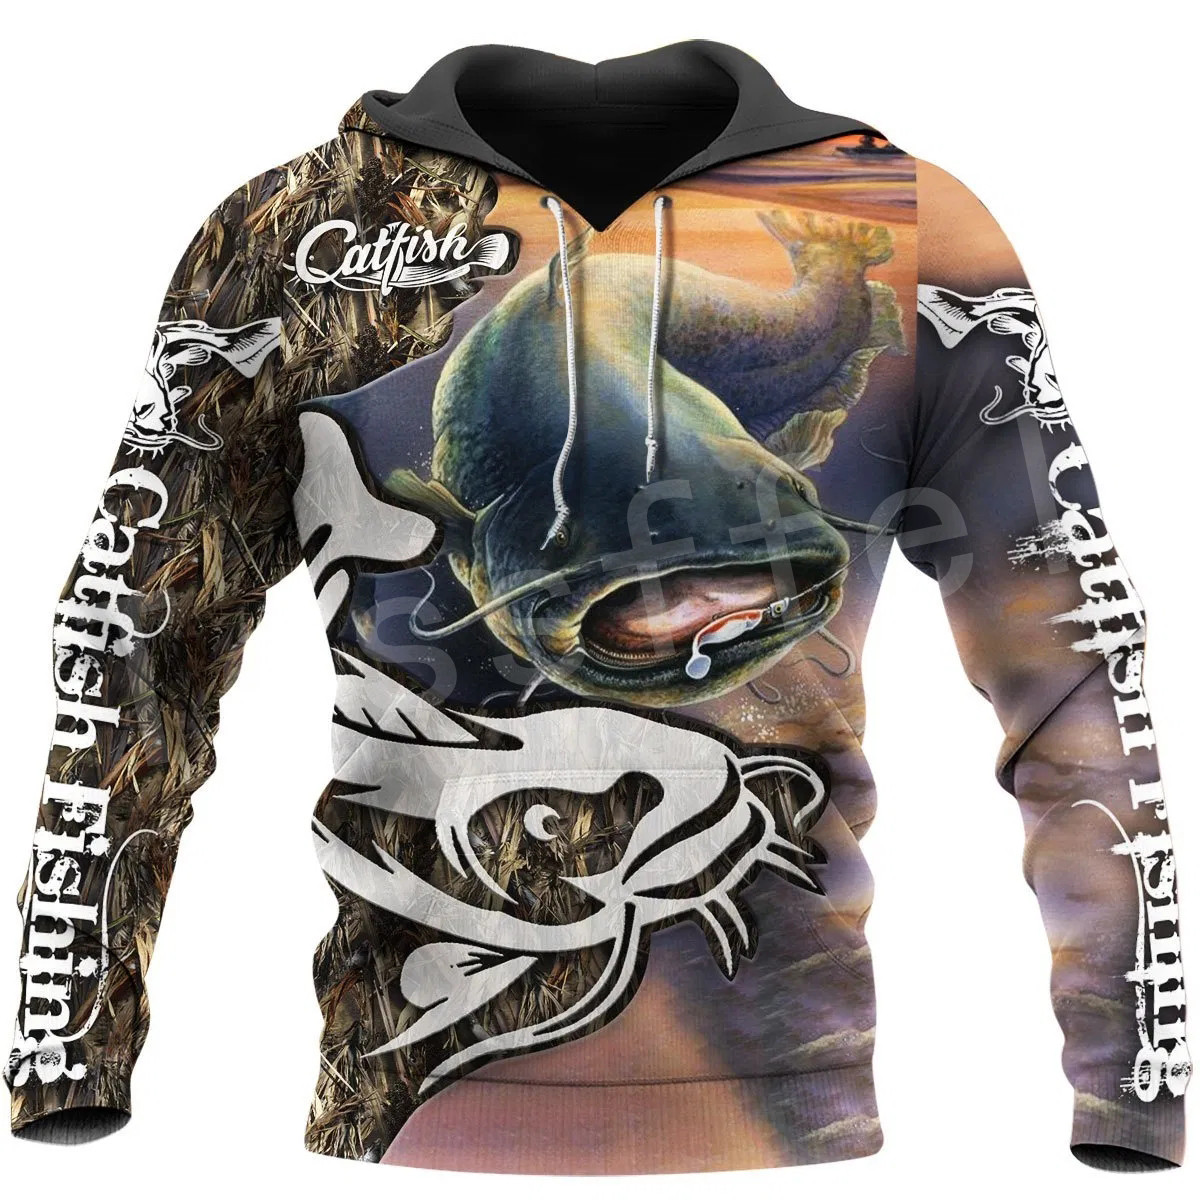 Tessffel New Fashion Animal Camo Bass Fishing Fisher Tracksuit Harajuku Unisex 3D Printed Zipper/Hoodies/Sweatshirts/Jacket s-6